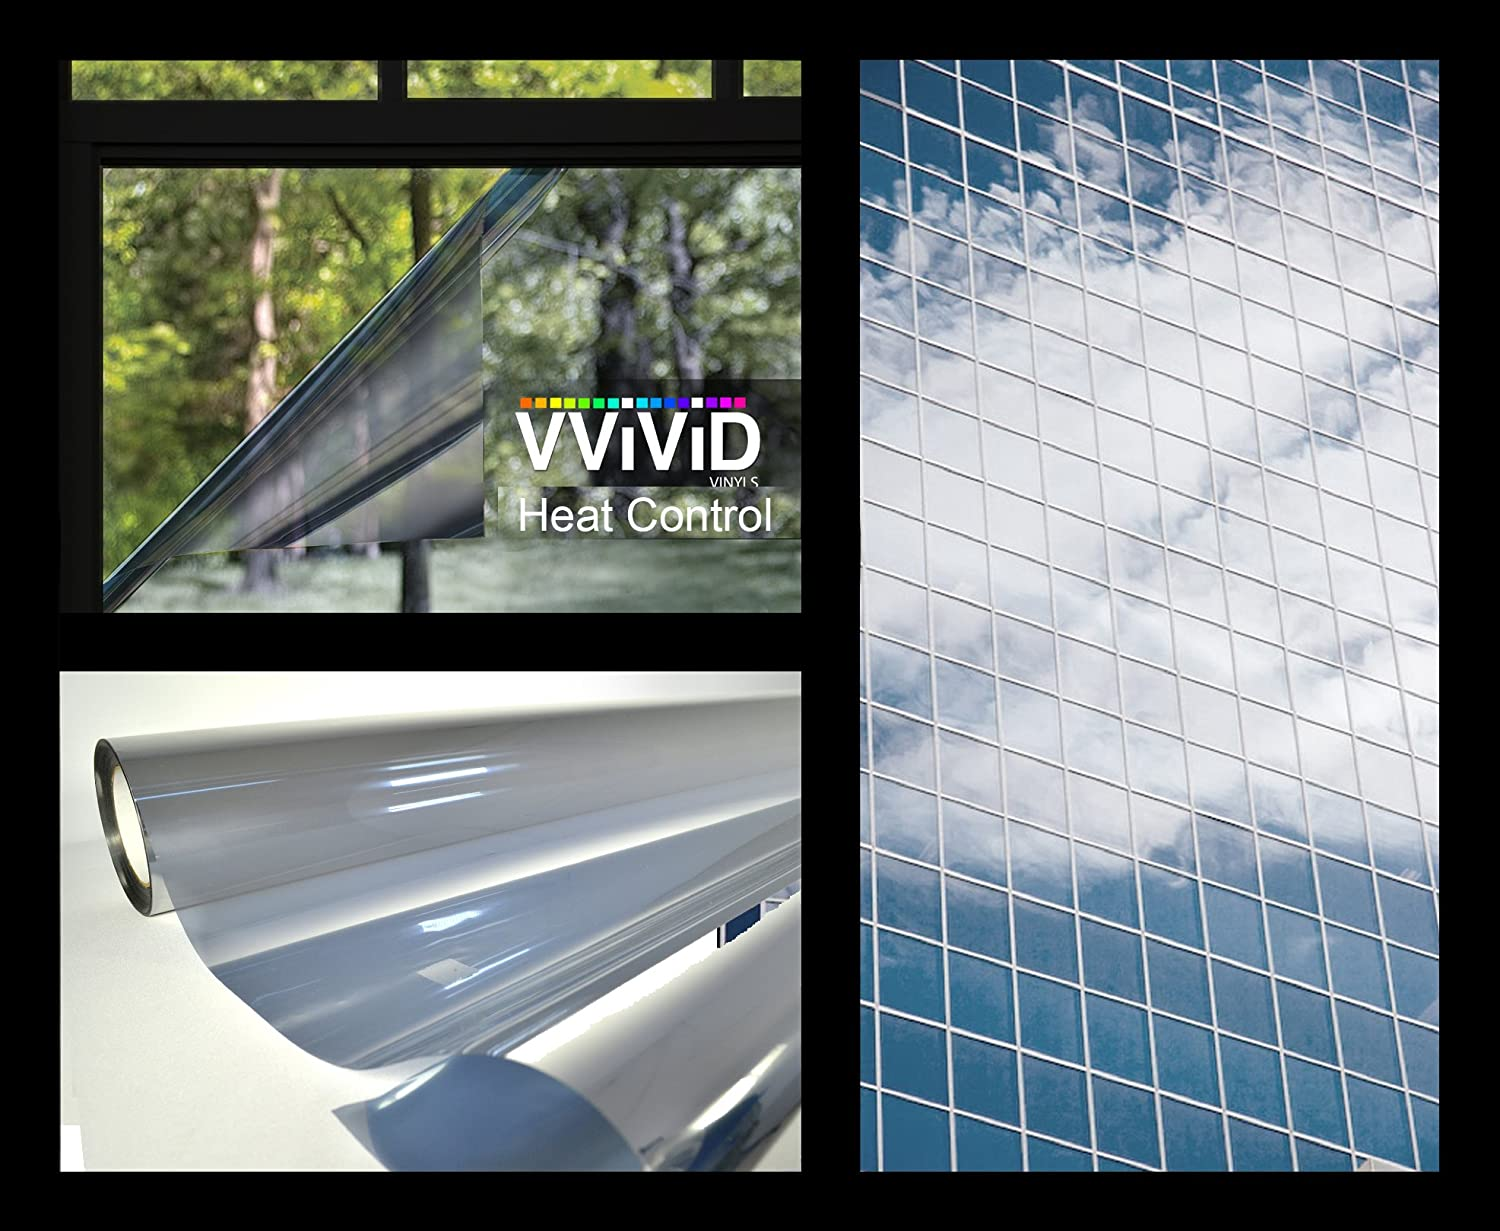 VViViD Heat Control Platinum Silver 30 inch by 10 feet Window Film Roll for Residential Home, Commercial Office